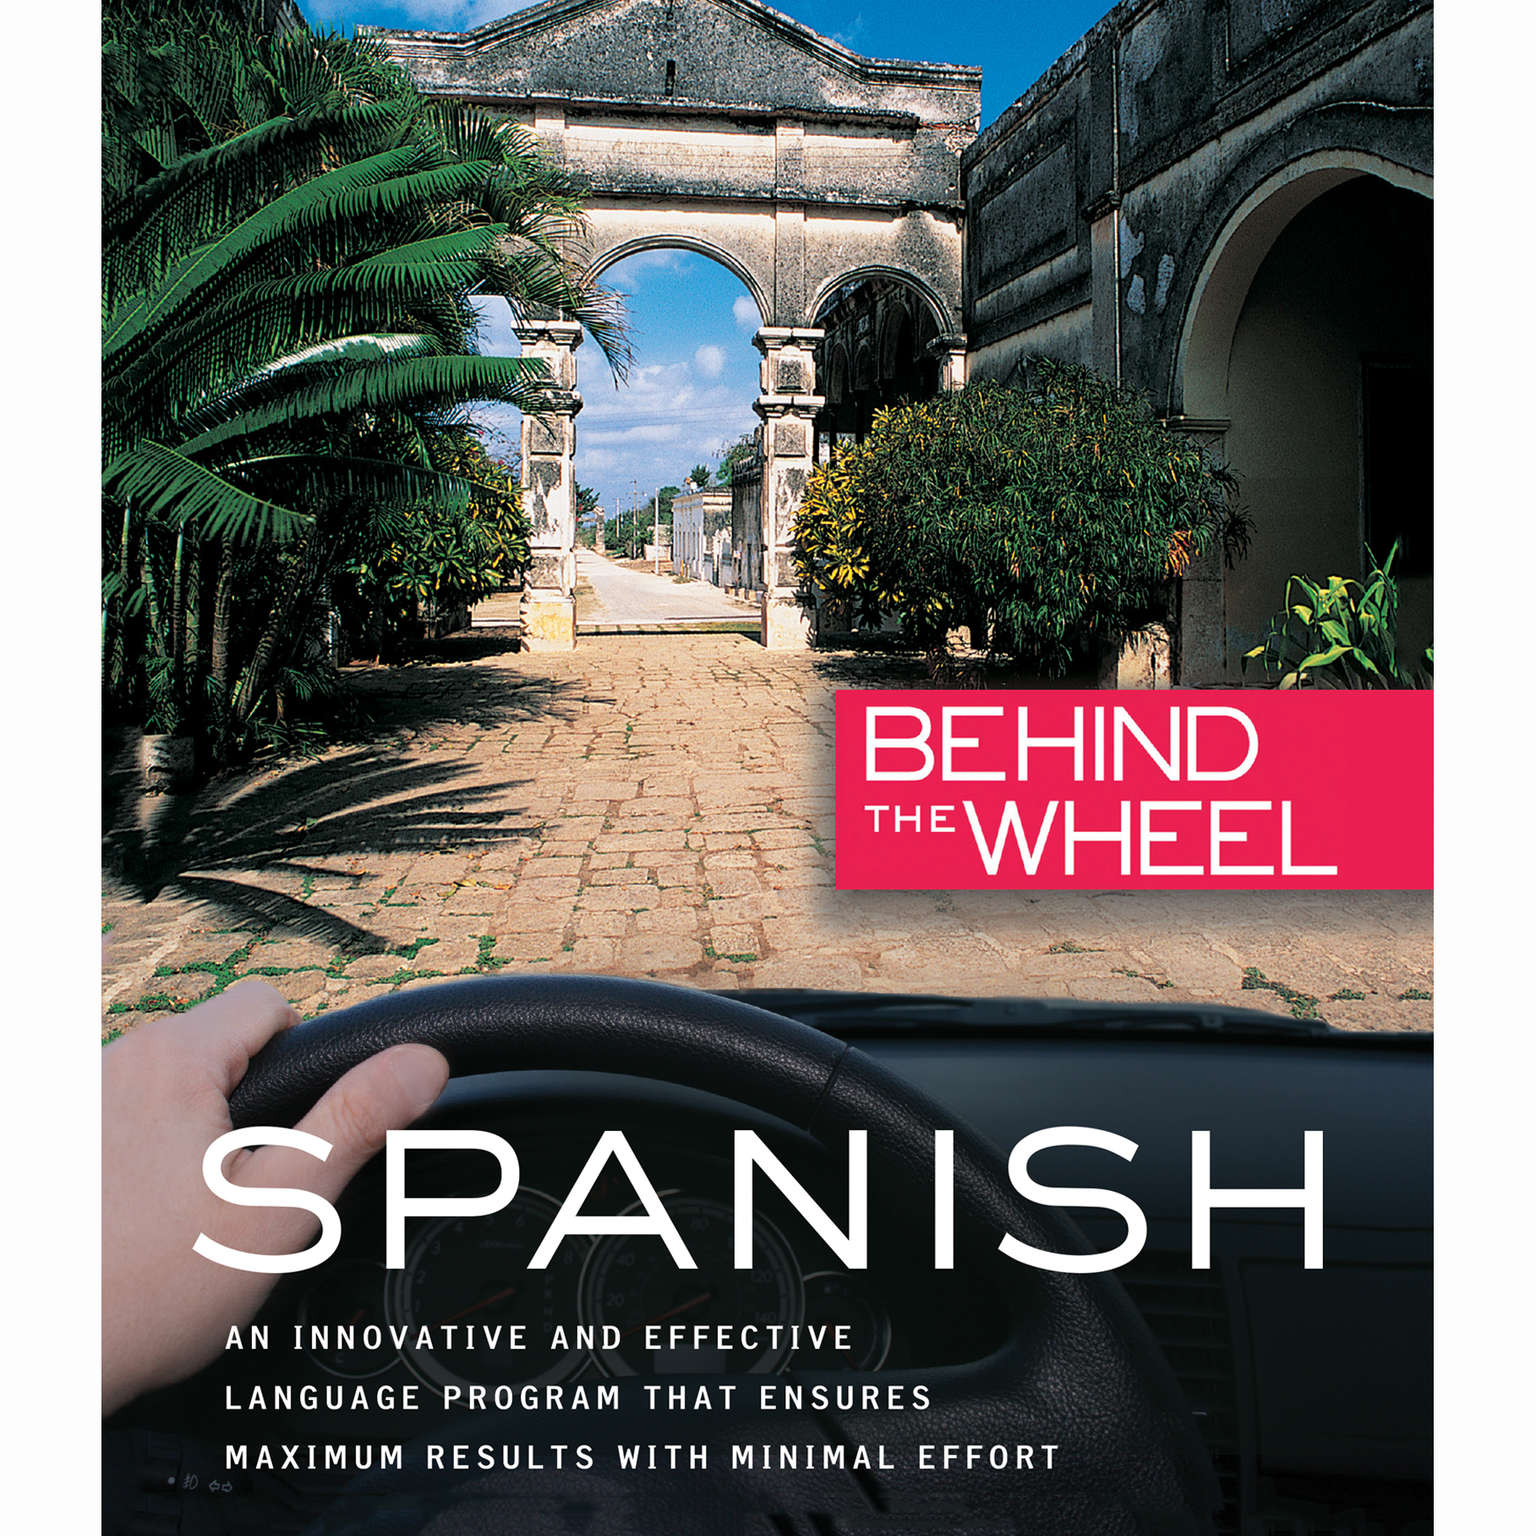 Printable Behind the Wheel - Spanish 1 Audiobook Cover Art